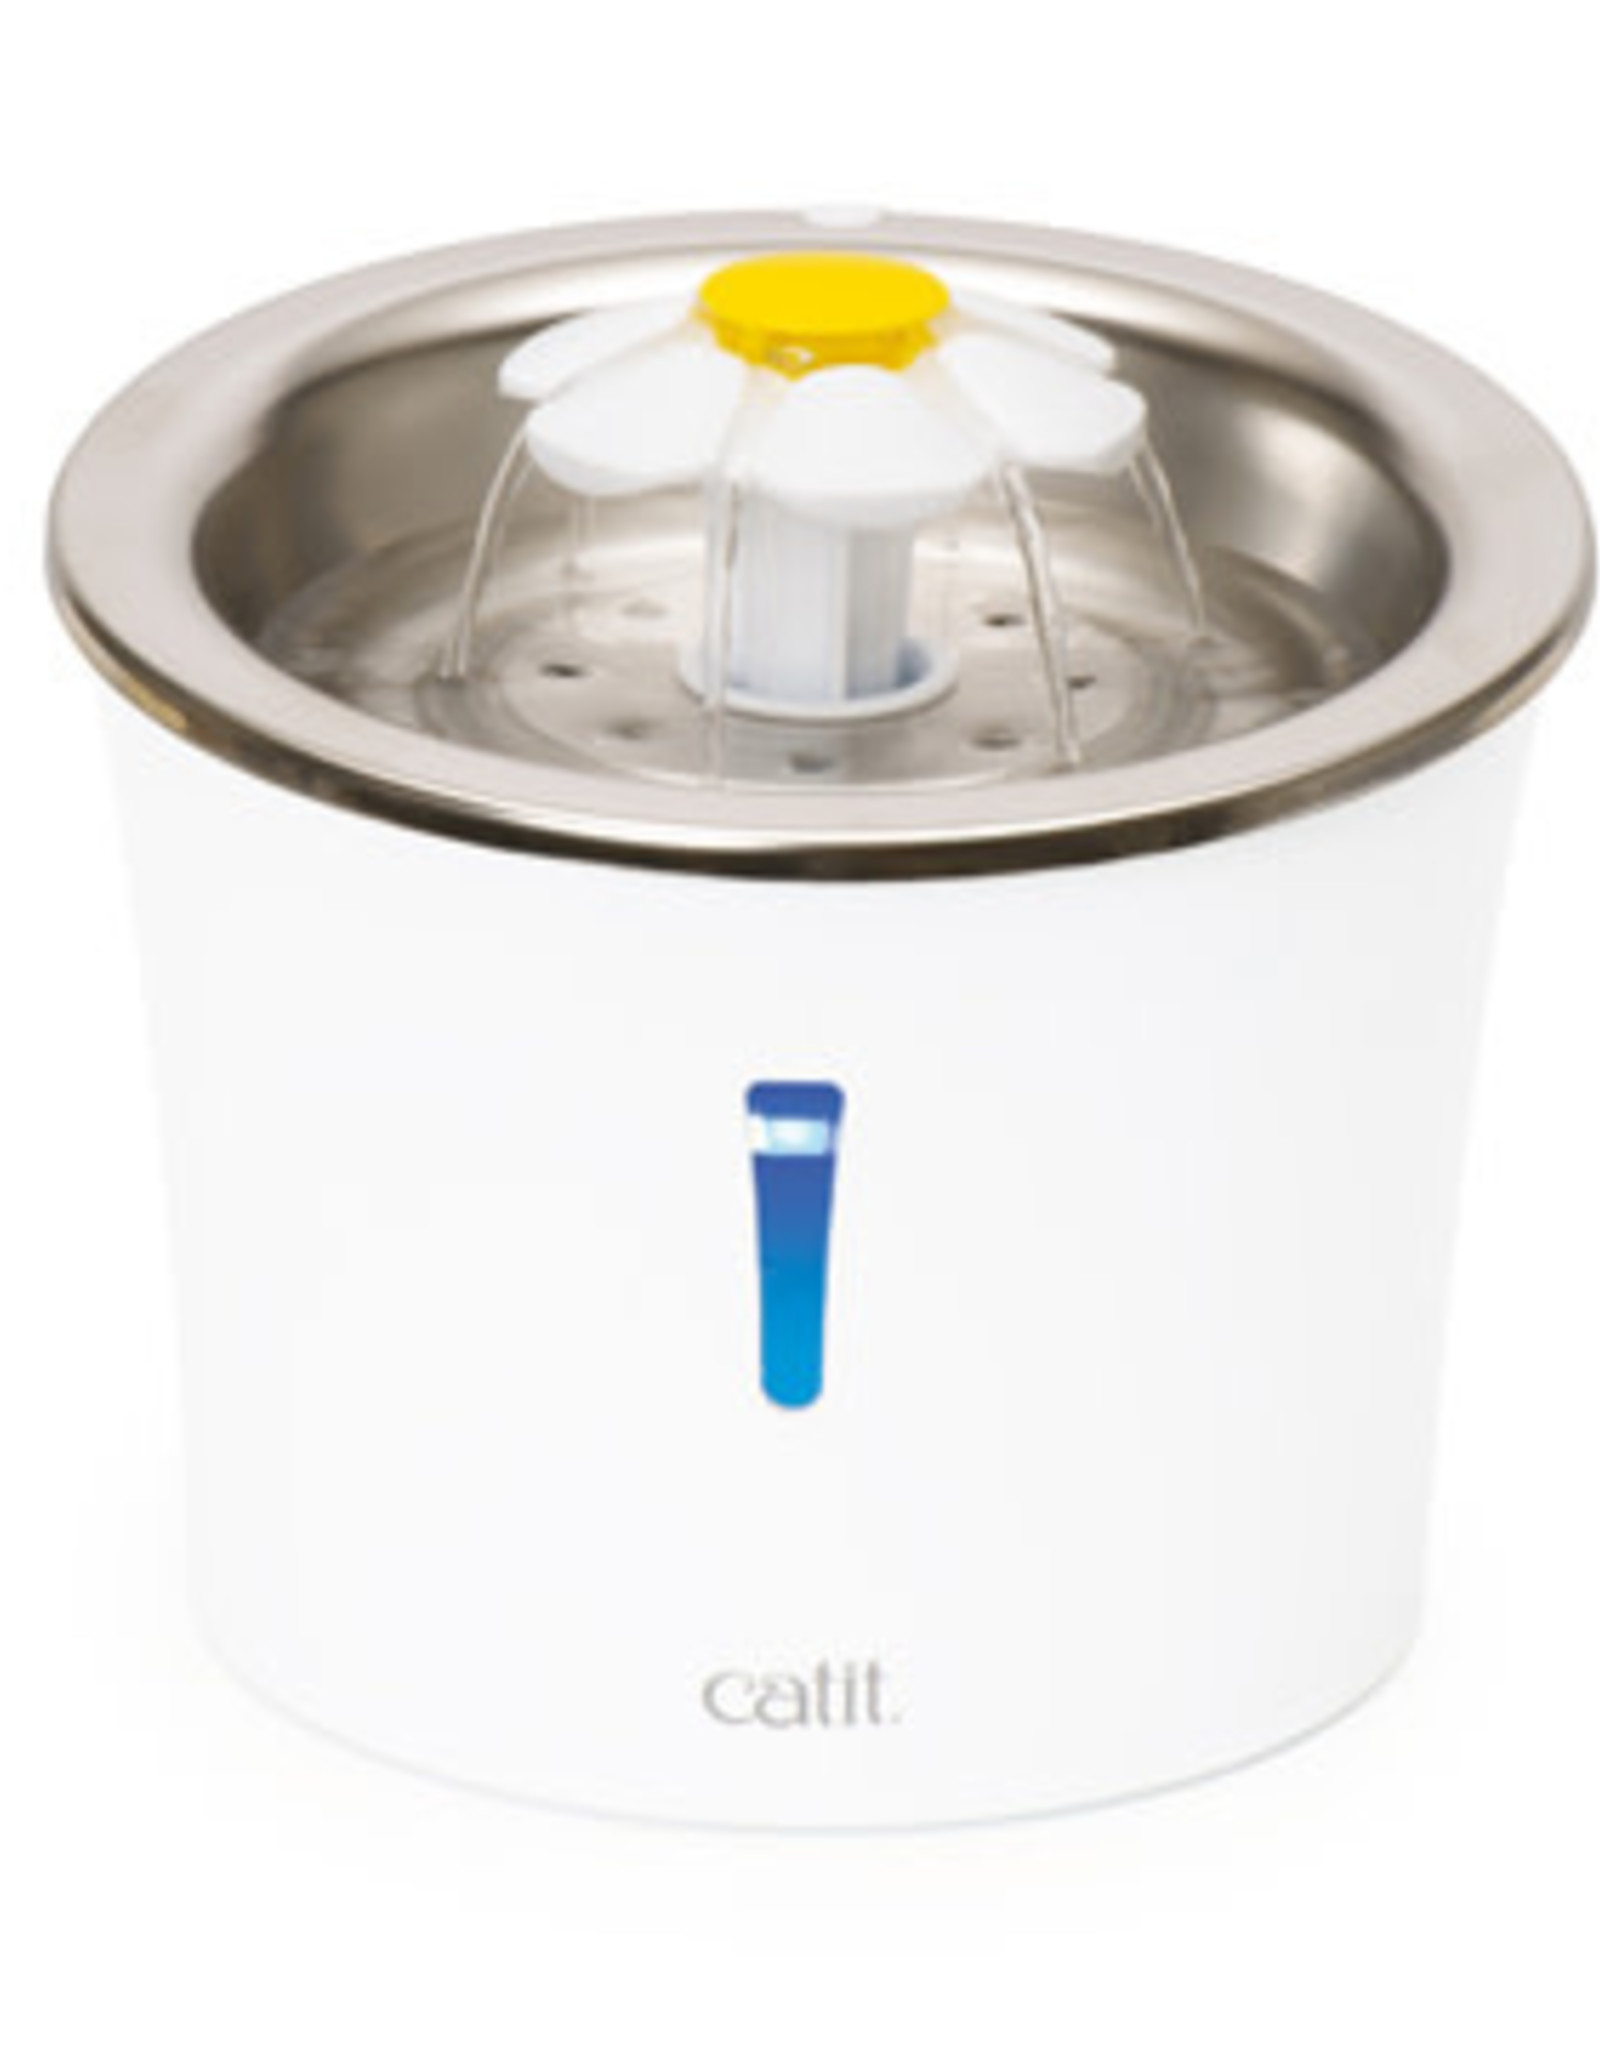 CATIT Catit Flower Fountain Stainless Steel Top